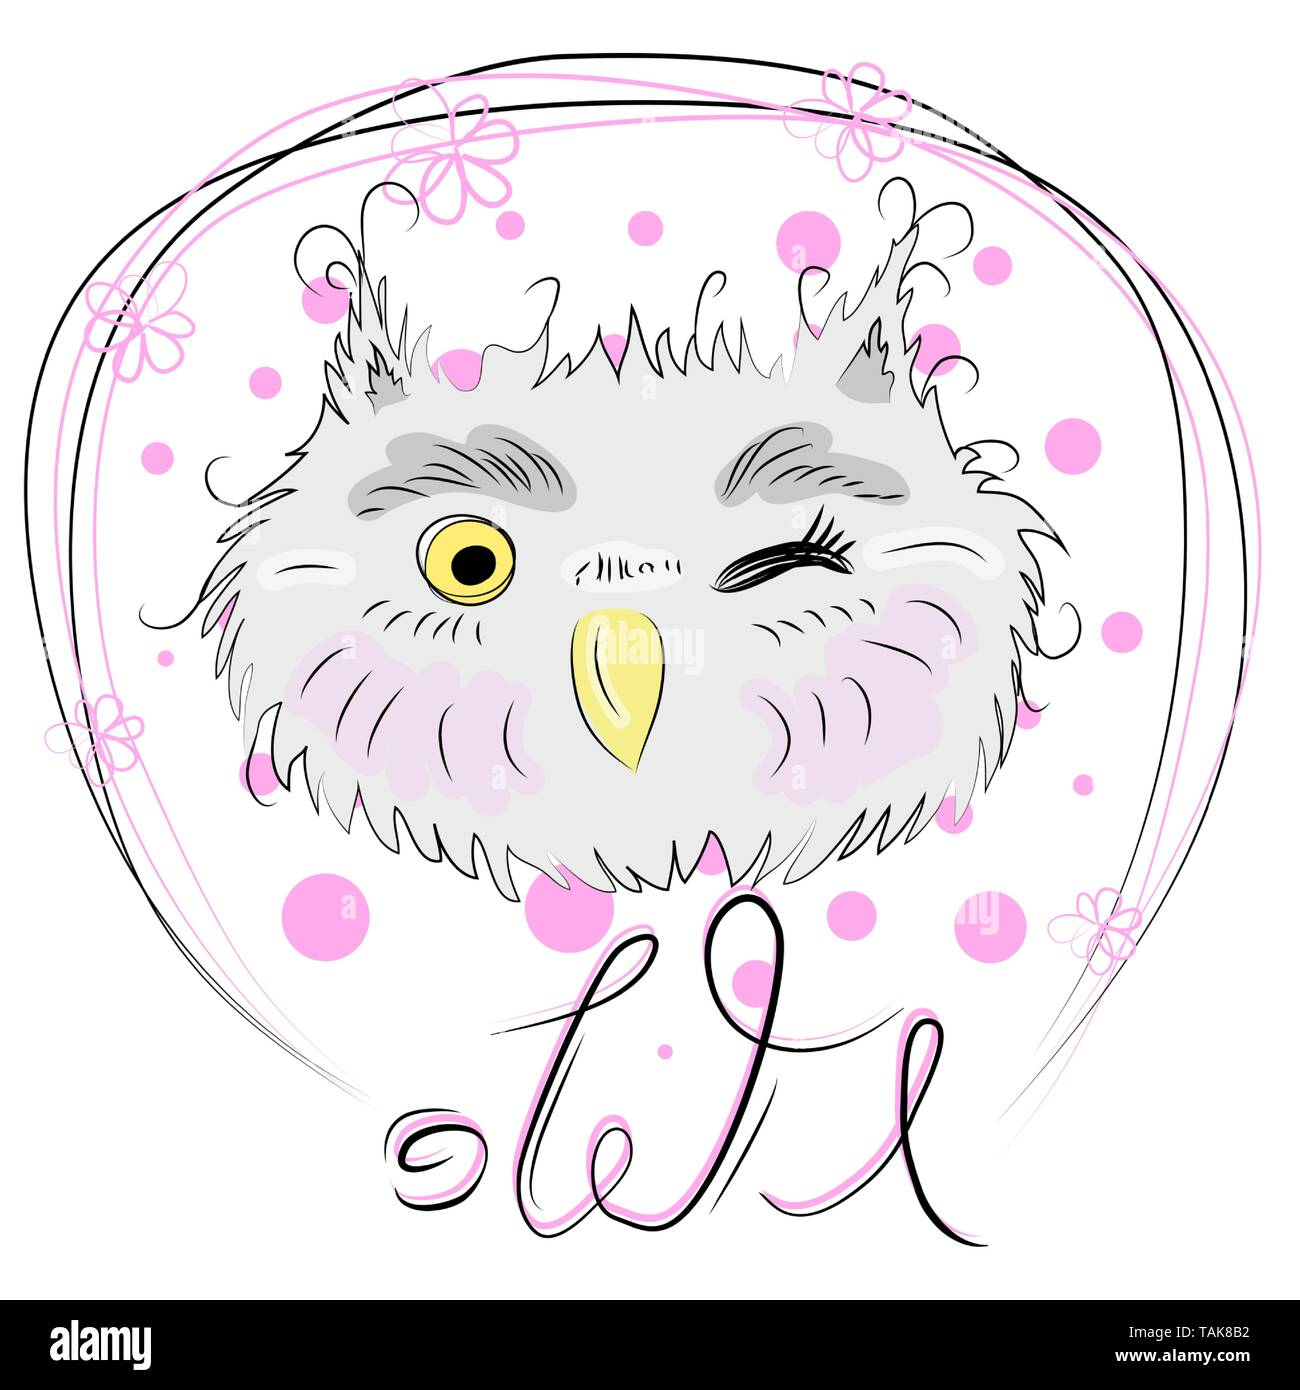 Cute owl face in a floral frame with a bow, owl, design, trendy, gray, pink - Stock Image